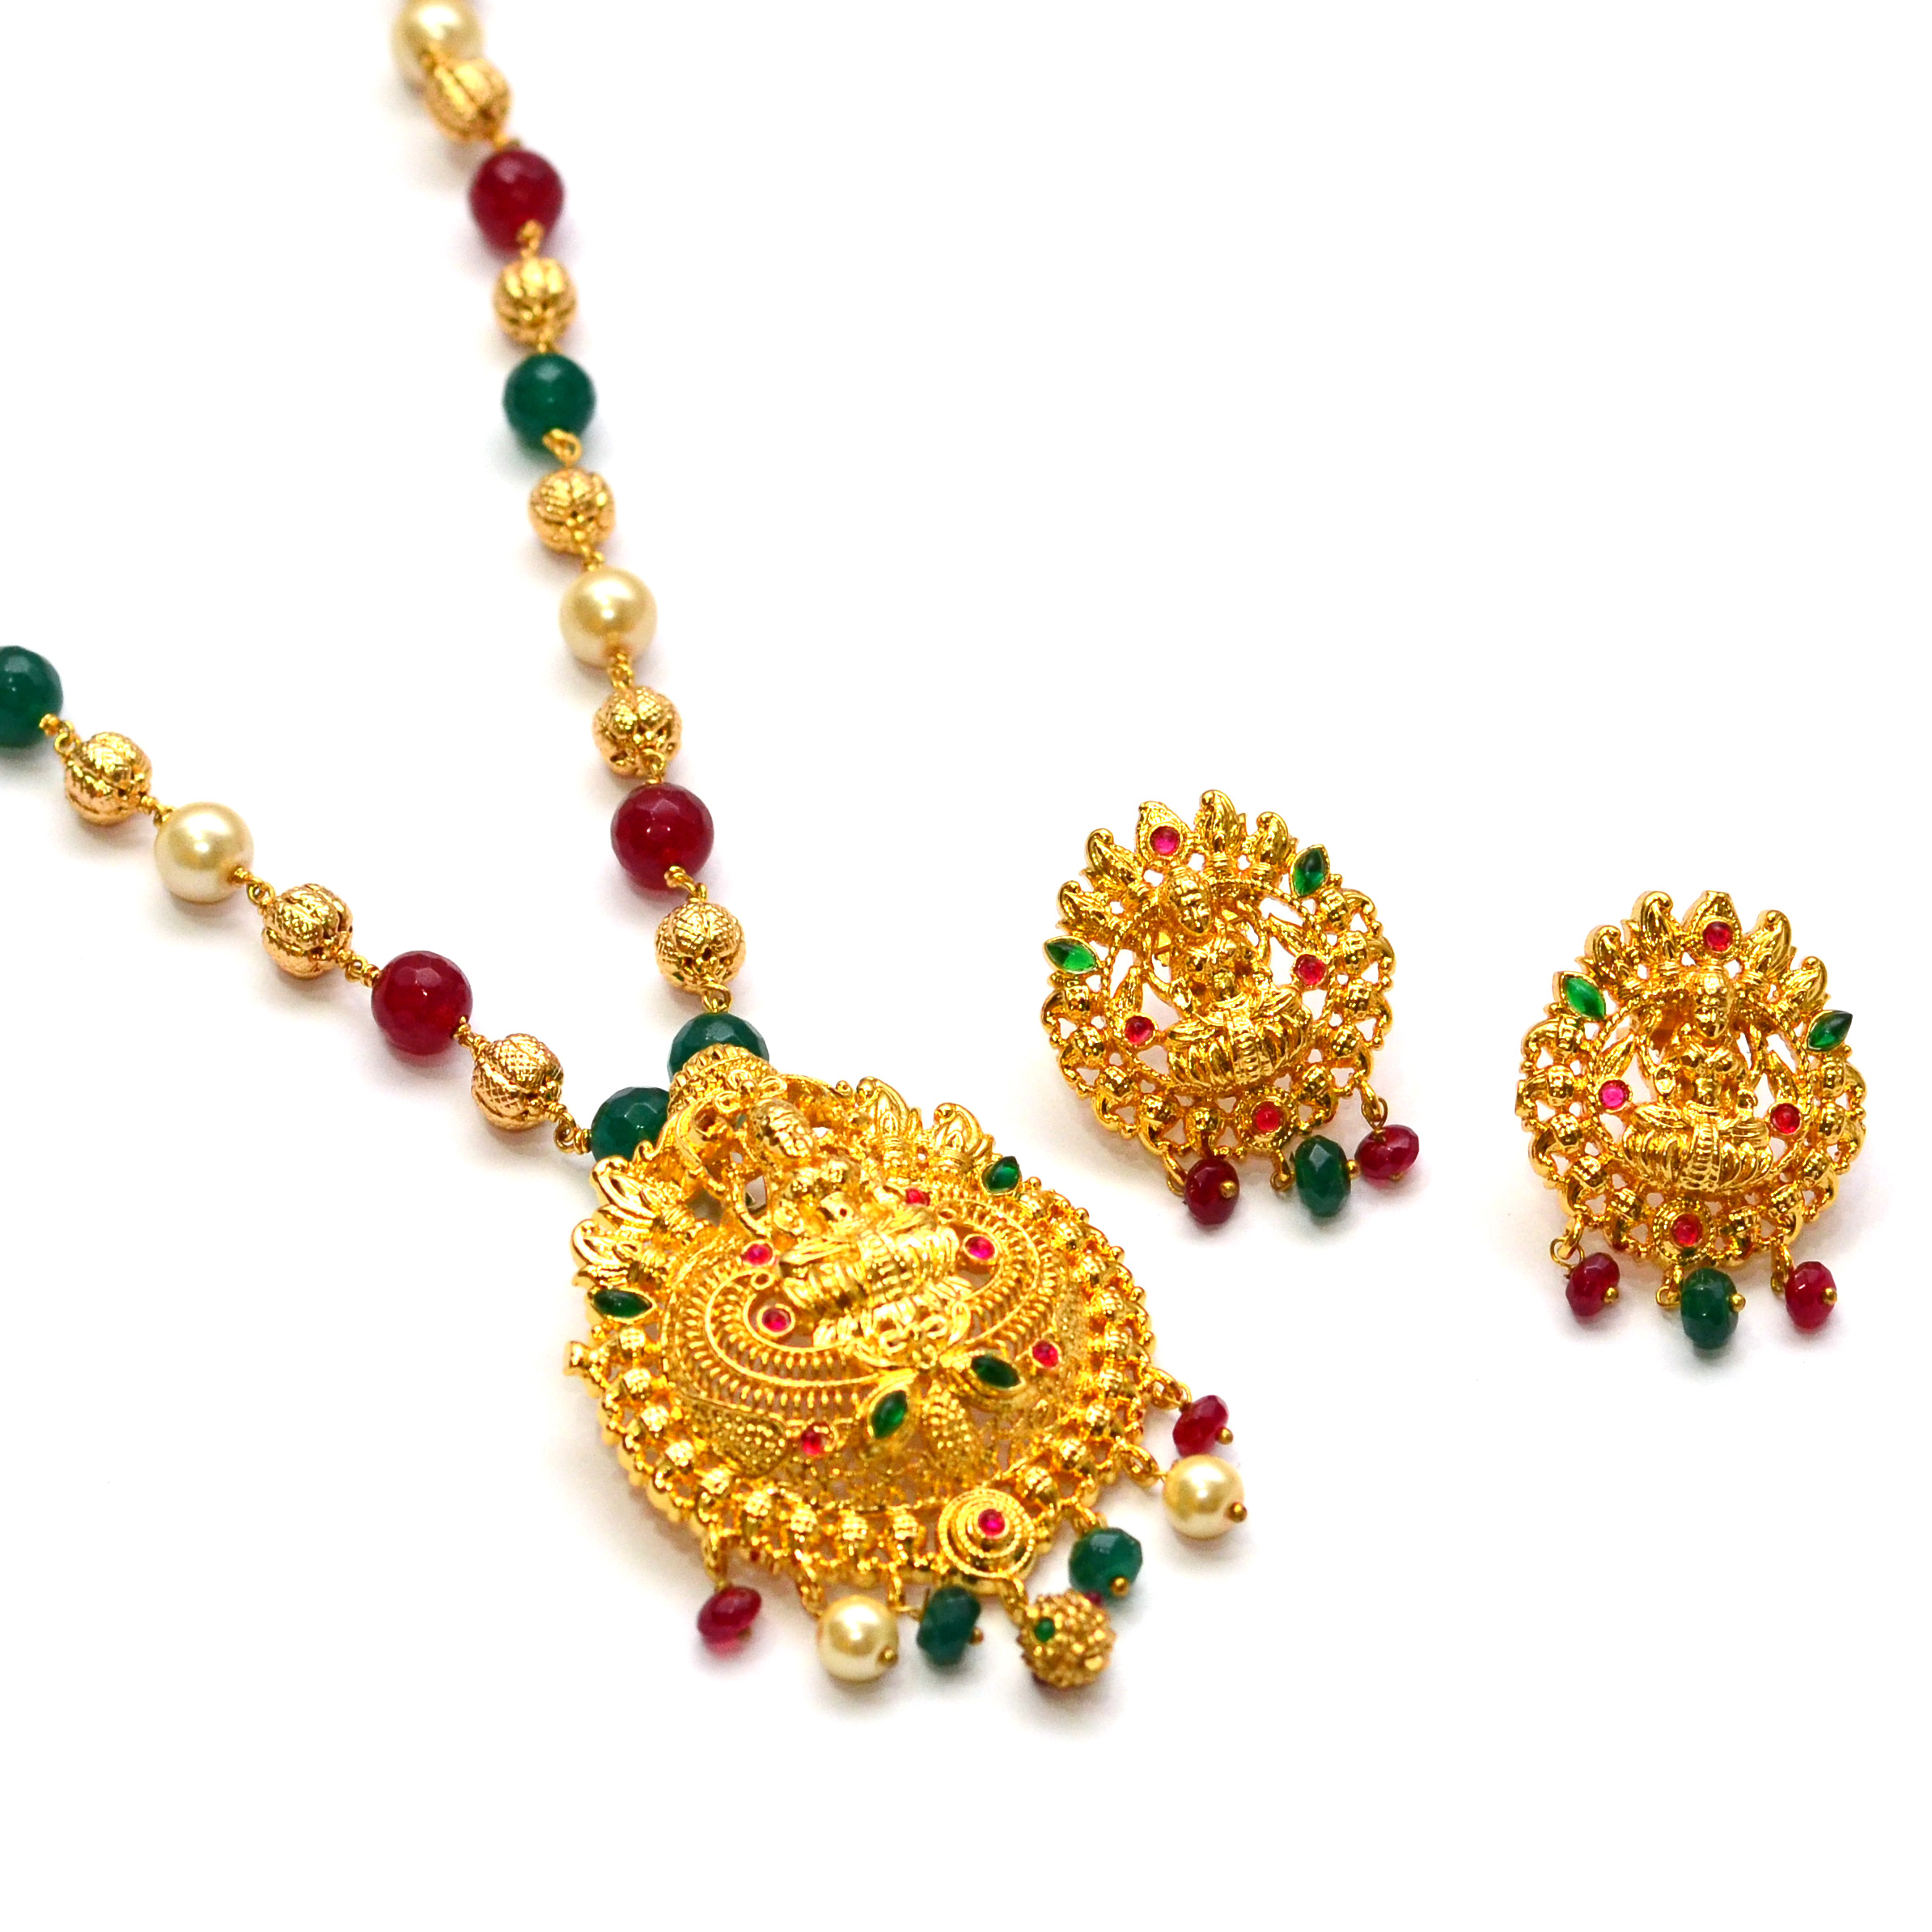 5f61c79884 Anvi's lakshmi (temple jewellery) pendent with rubies and emeralds with  multi color beads and pearls chain - Ratna Varma Polakonda - 162951